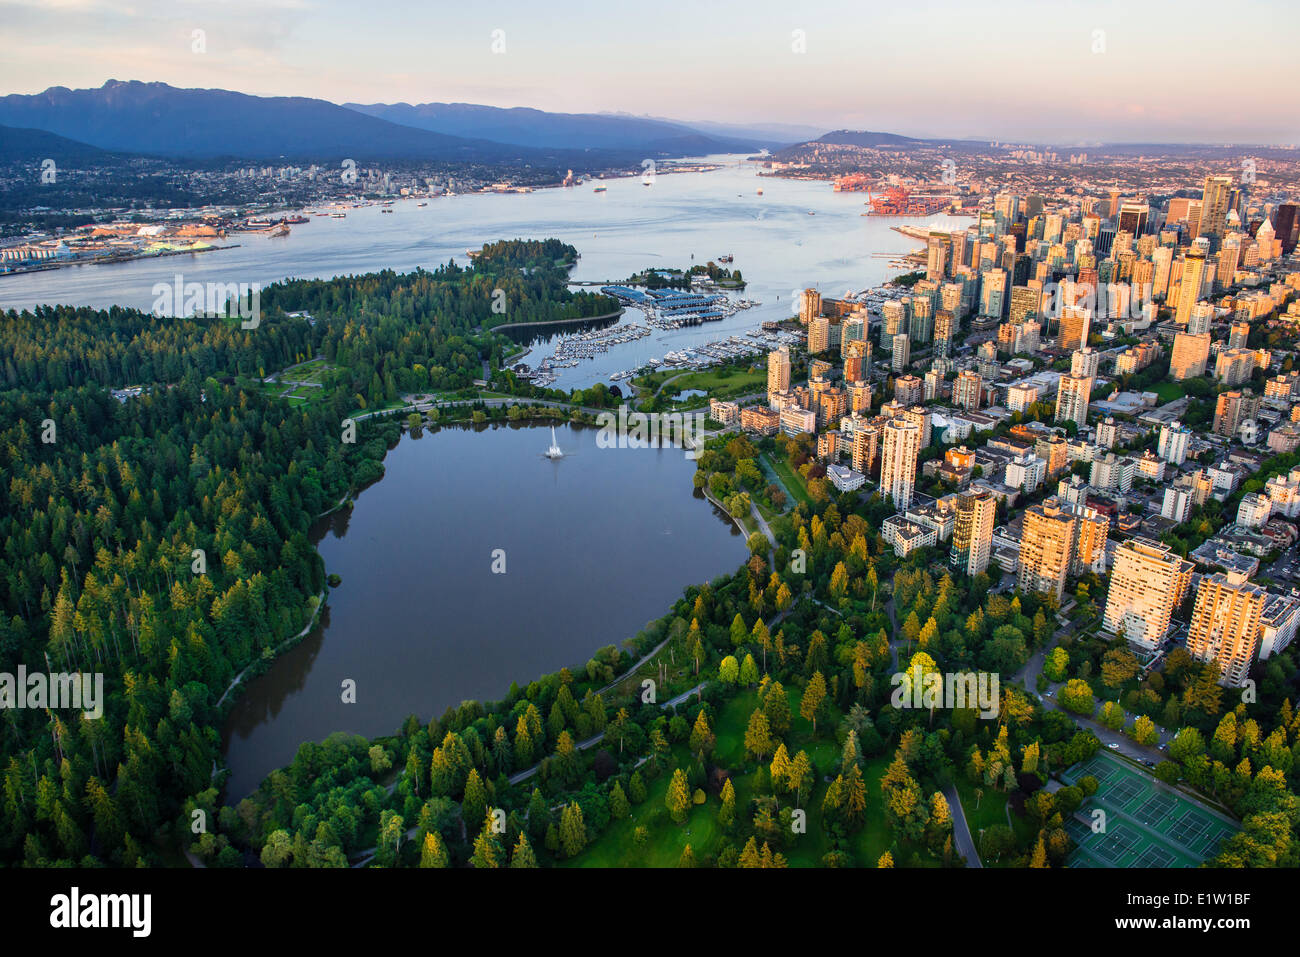 Stanley Park Vancouver Aerial Stock Photos & Stanley Park